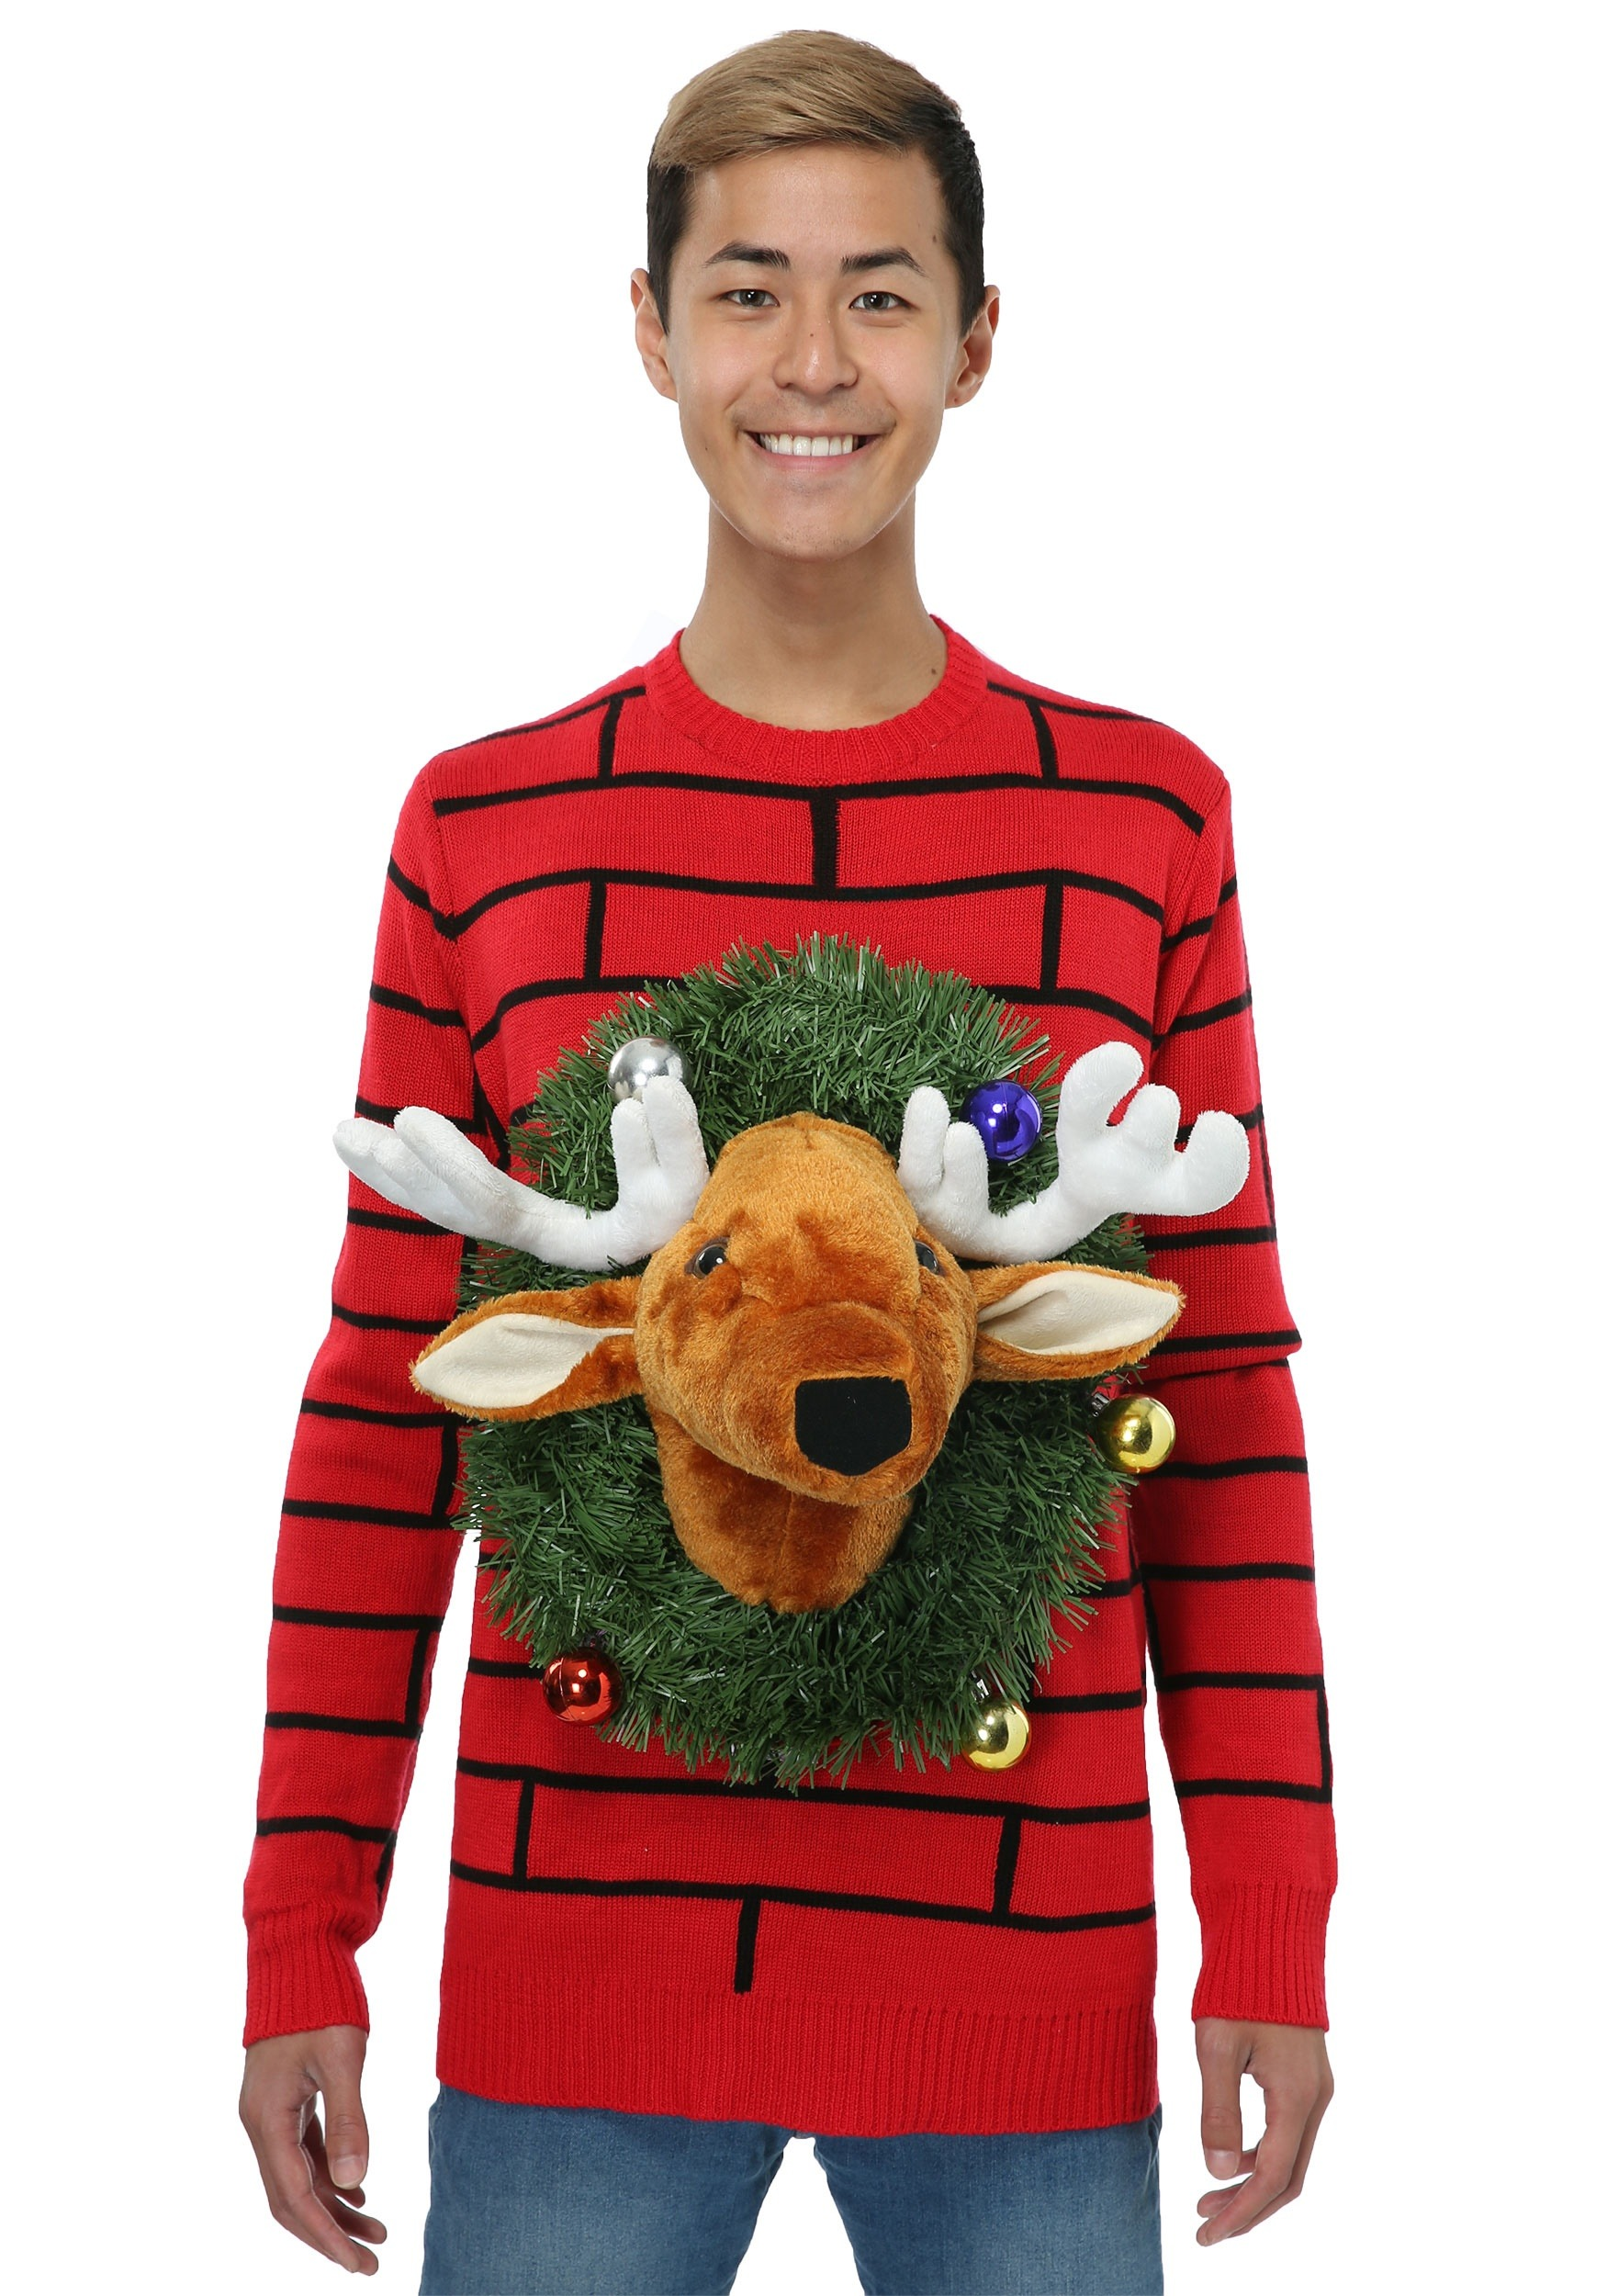 another ugly sweater design in red color its reindeer head design is enhanced with the small colorful baubles and garland - Cheap Mens Ugly Christmas Sweater